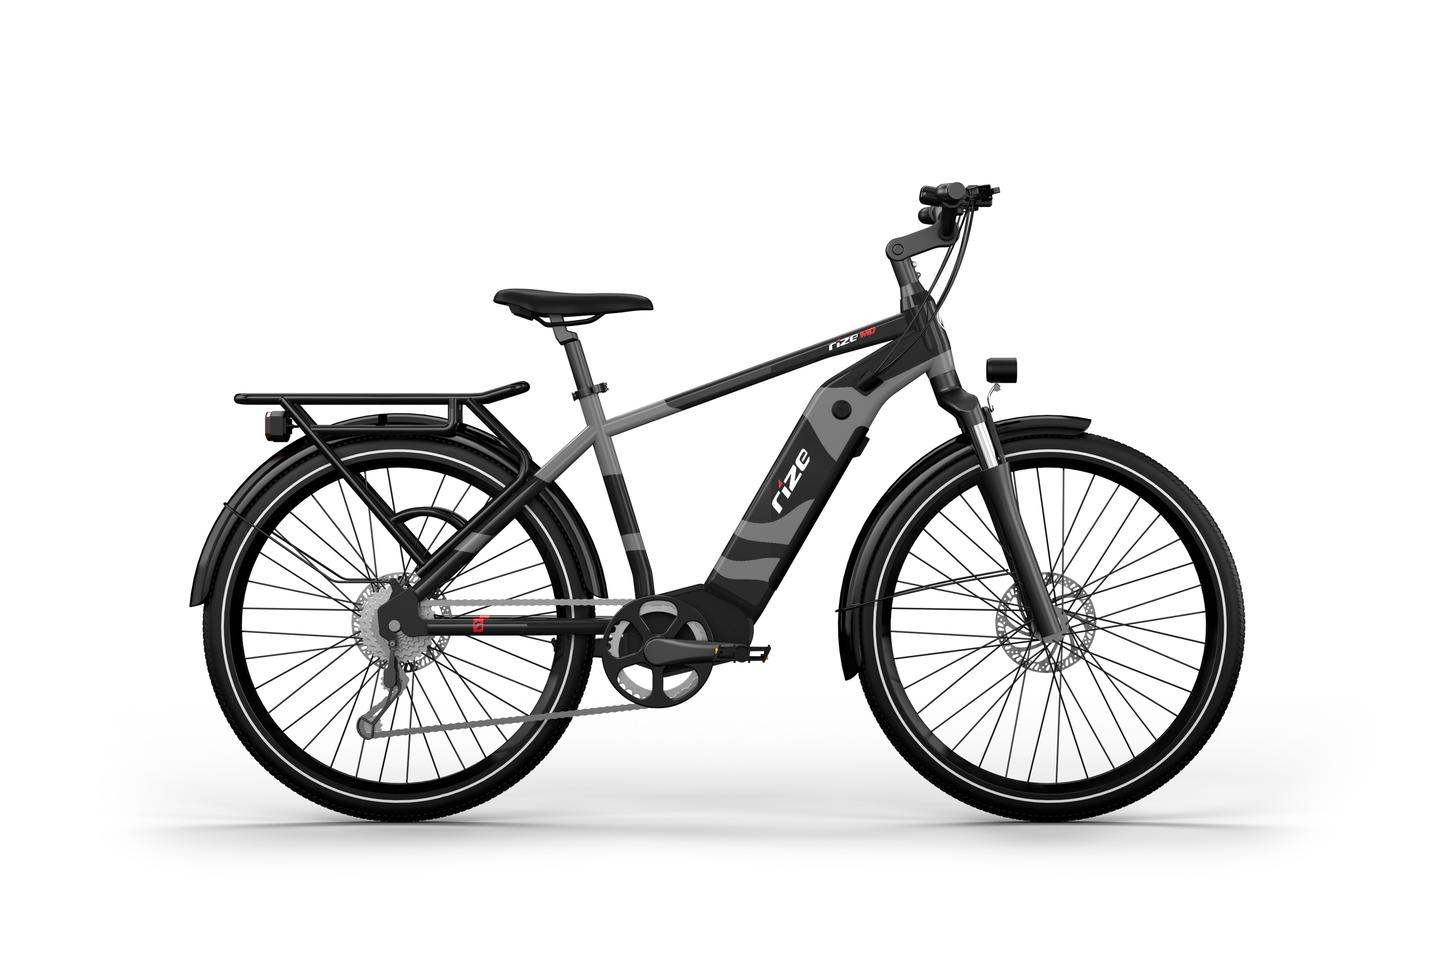 Designed for the road or trail, the Rize MD features a 750W (peak) Bafang motor and optionally can be fitted with two batteries for a charging potential of over 120 miles